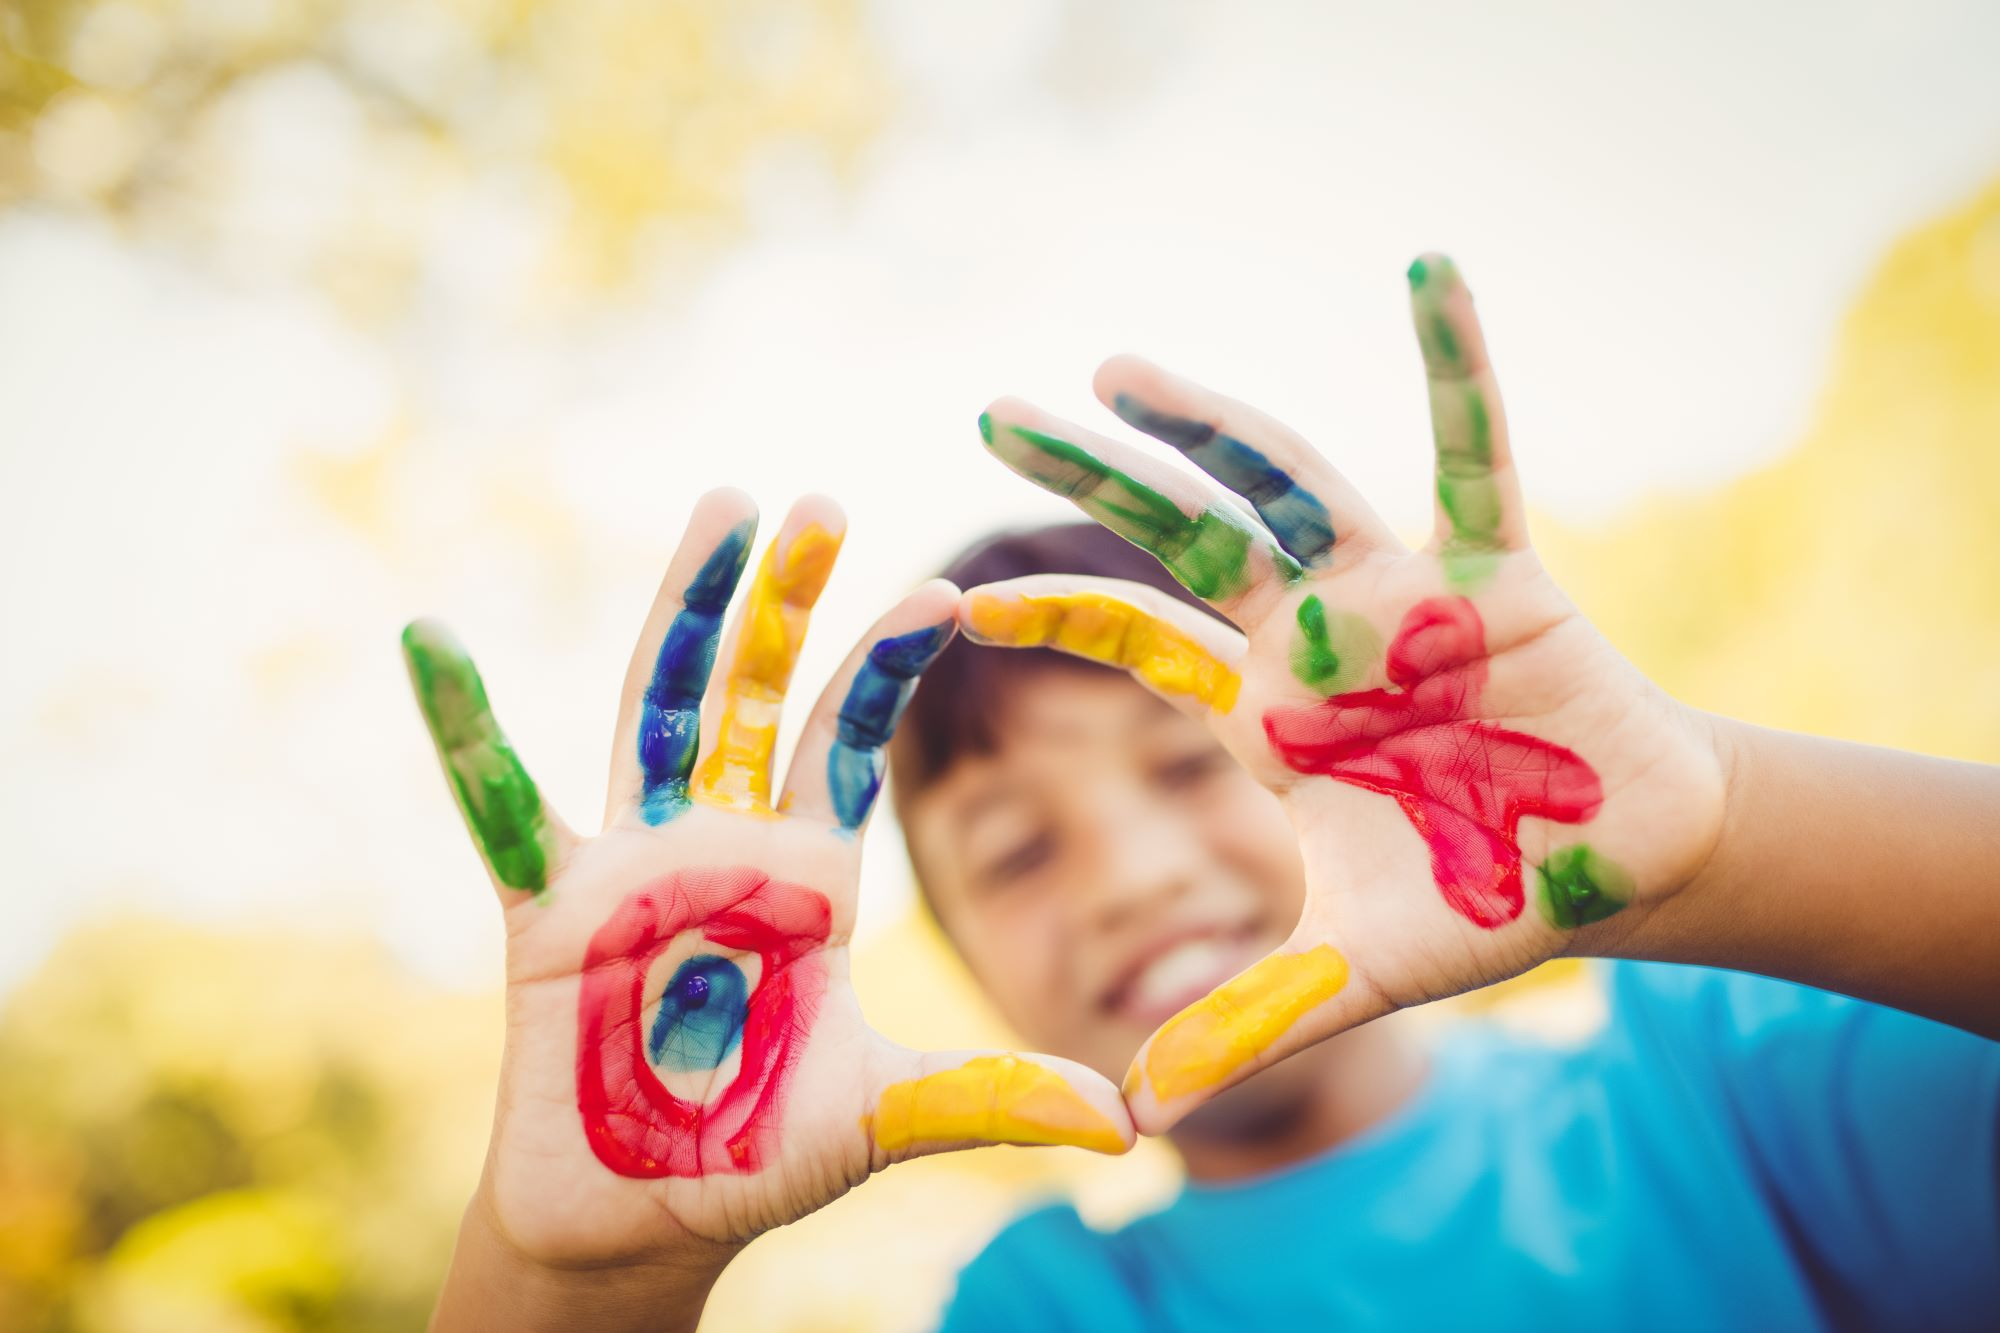 Boy making a circle to the camera with his hands painted in a park